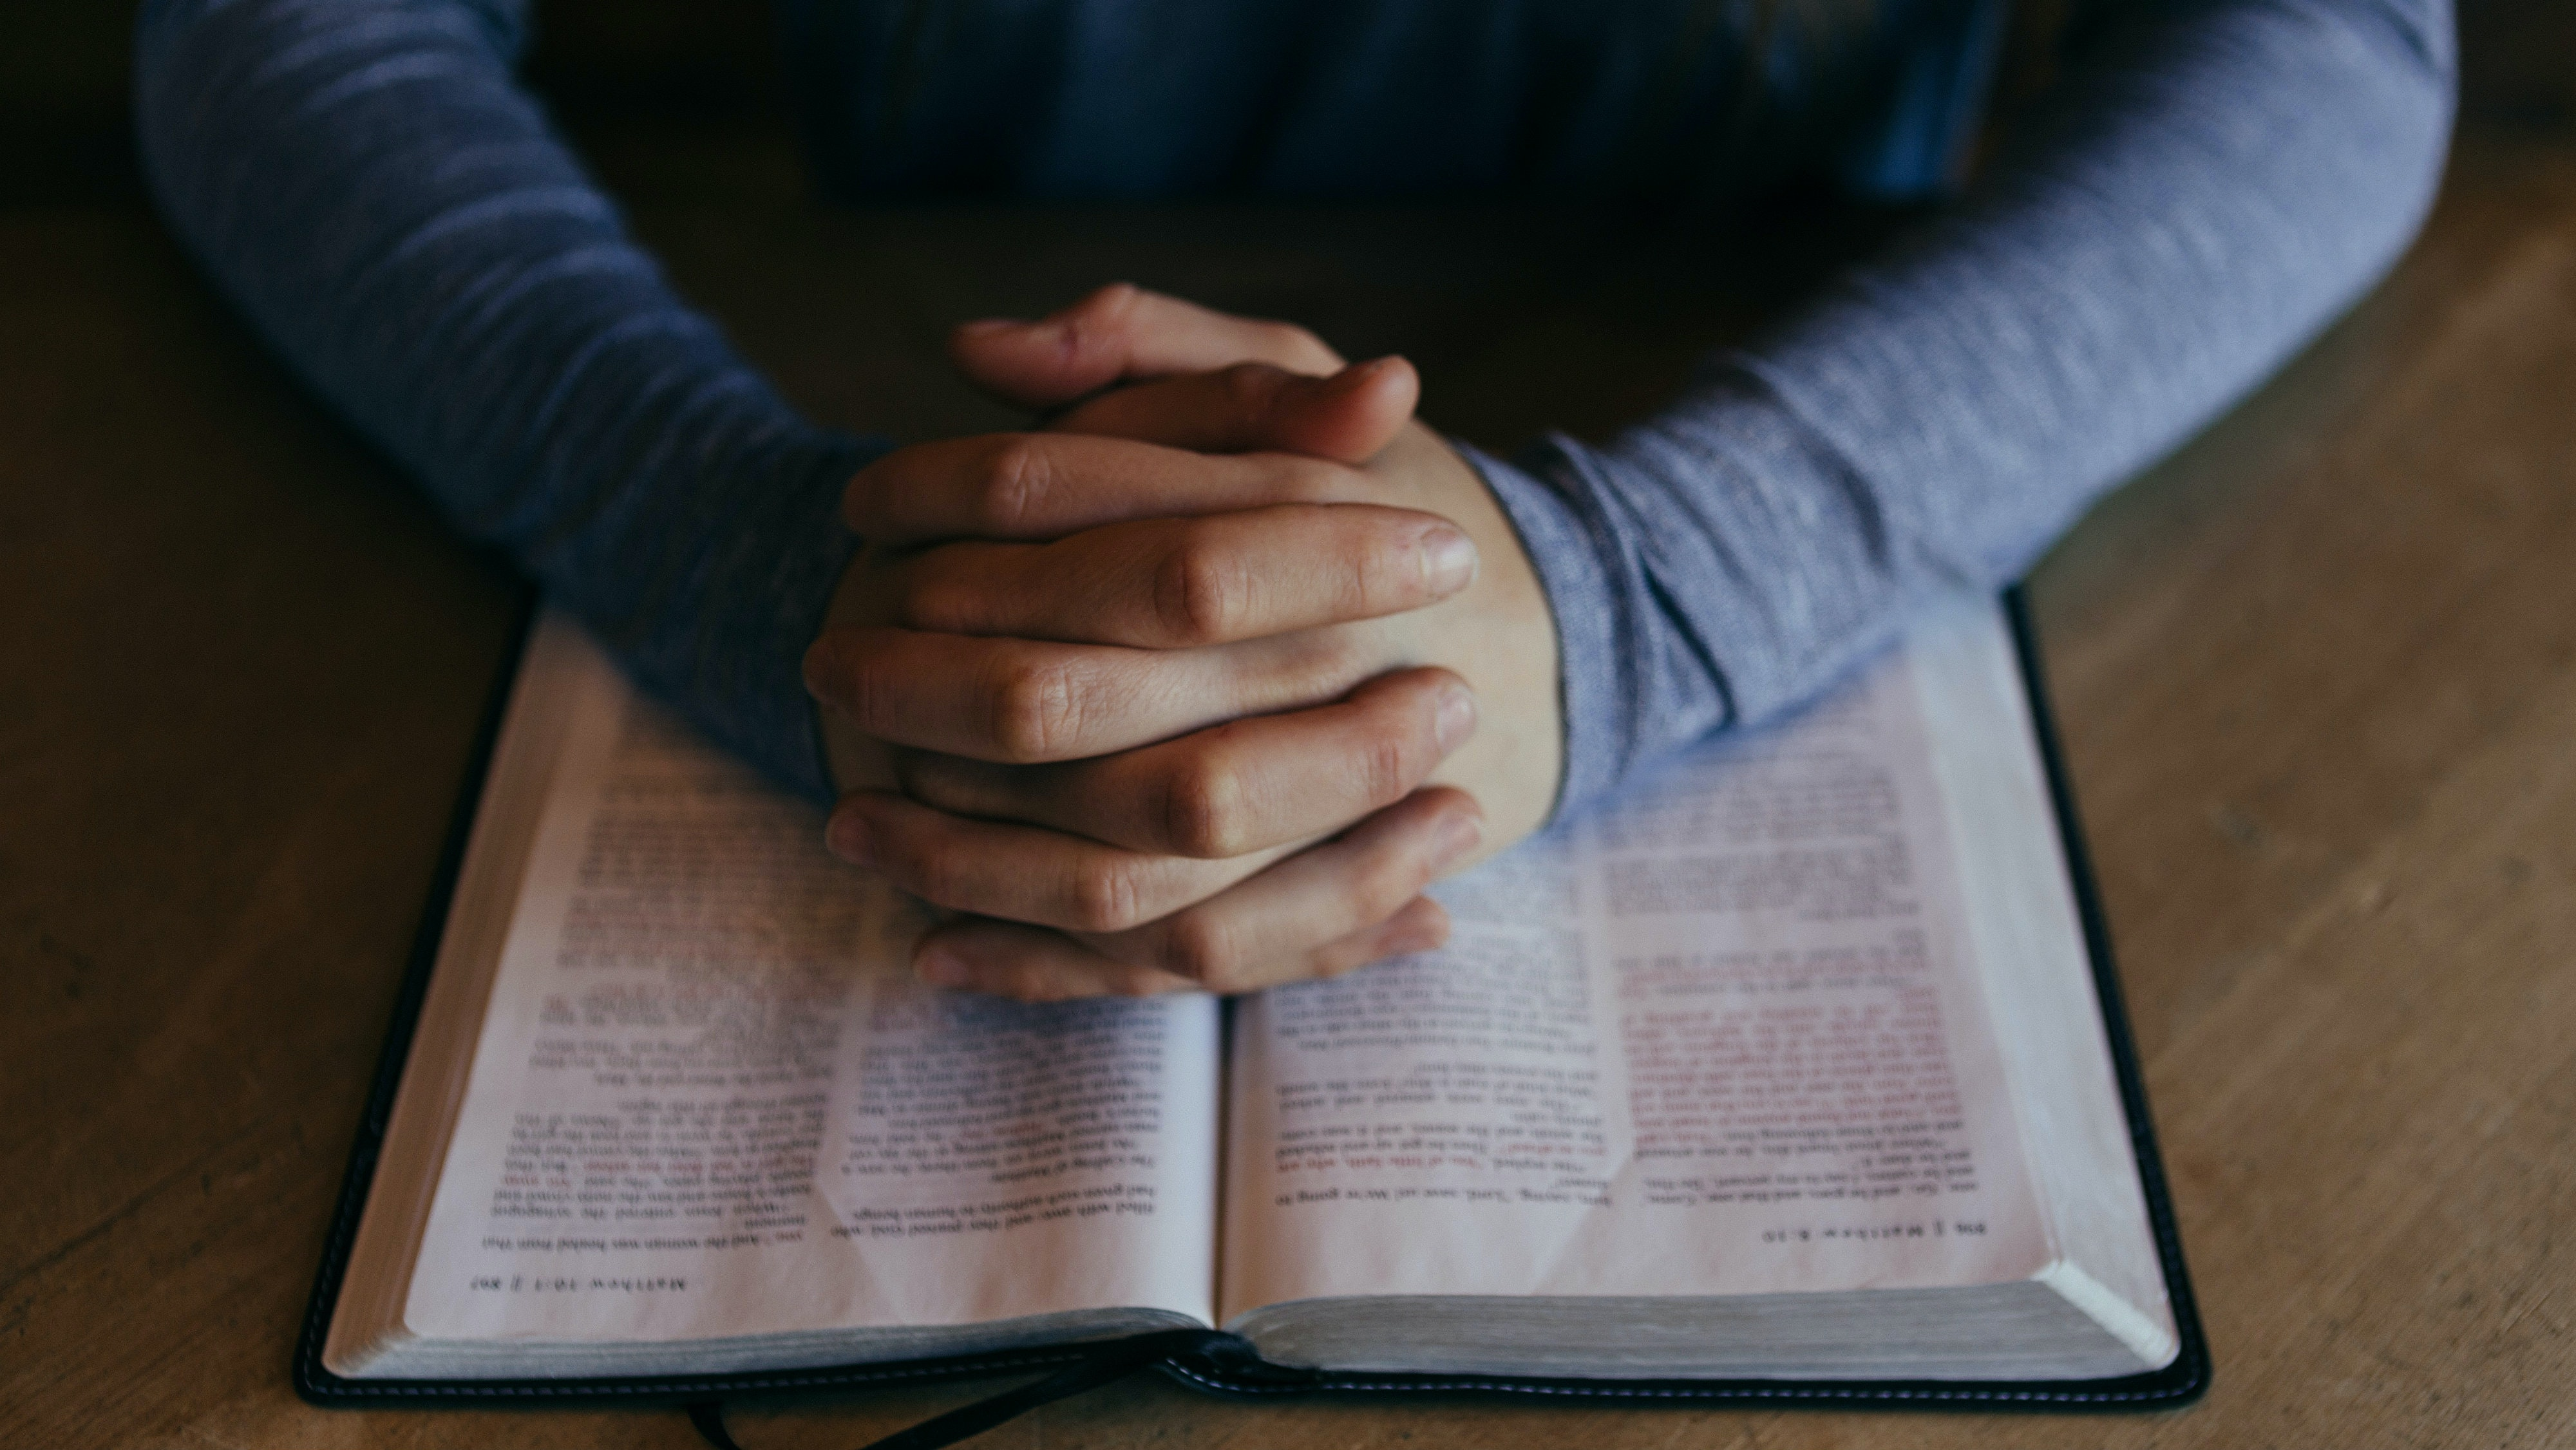 Does the power of prayer depend on us